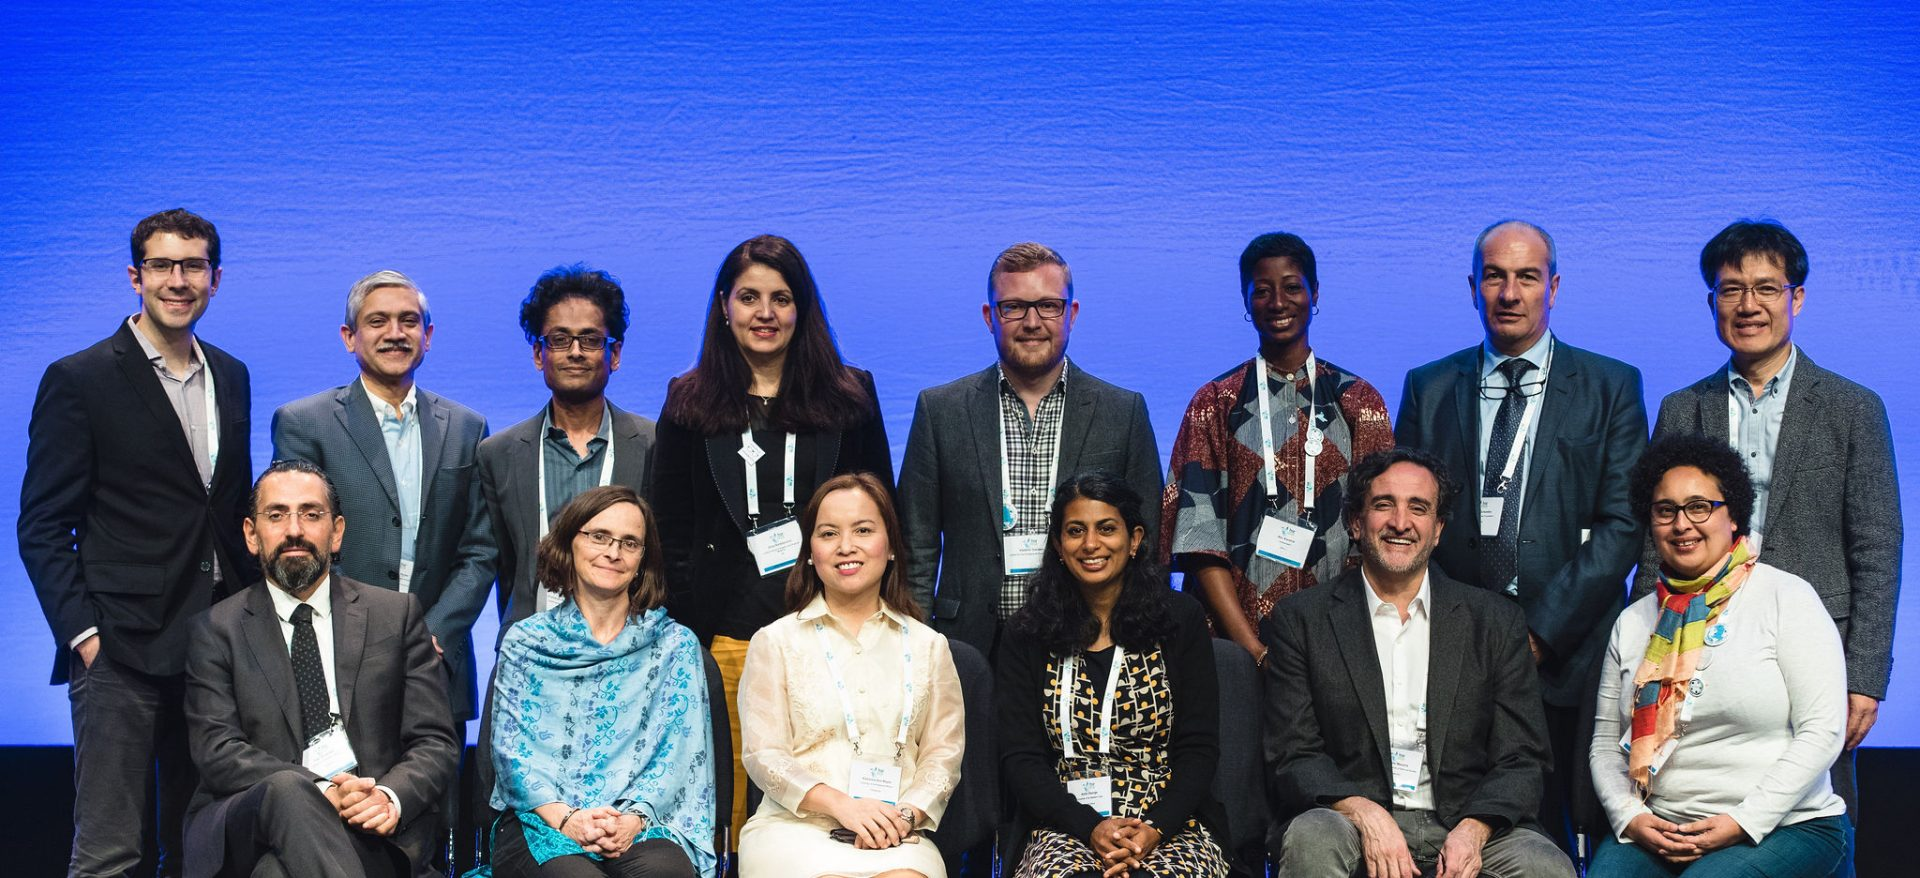 Members of the HSG Board of Directors at HSR2018.